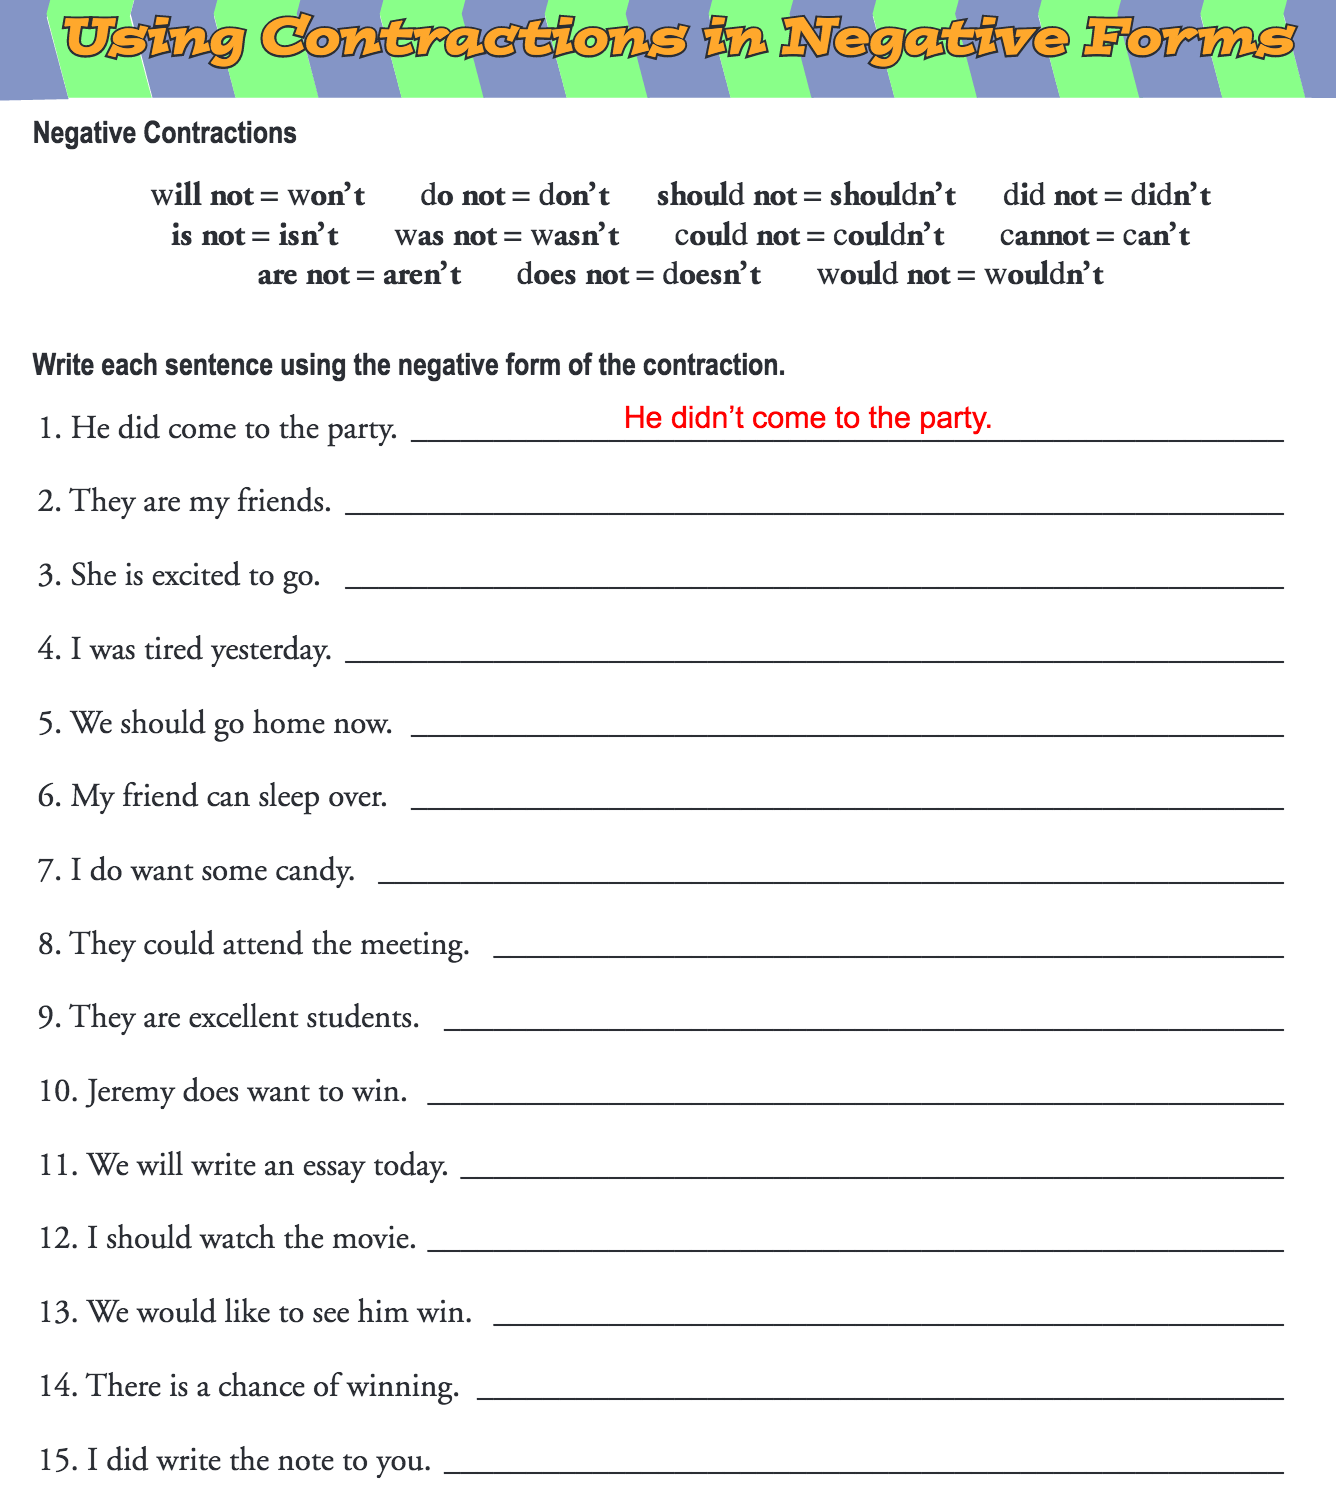 hight resolution of Negative Contractions Worksheet   Printable Worksheets and Activities for  Teachers